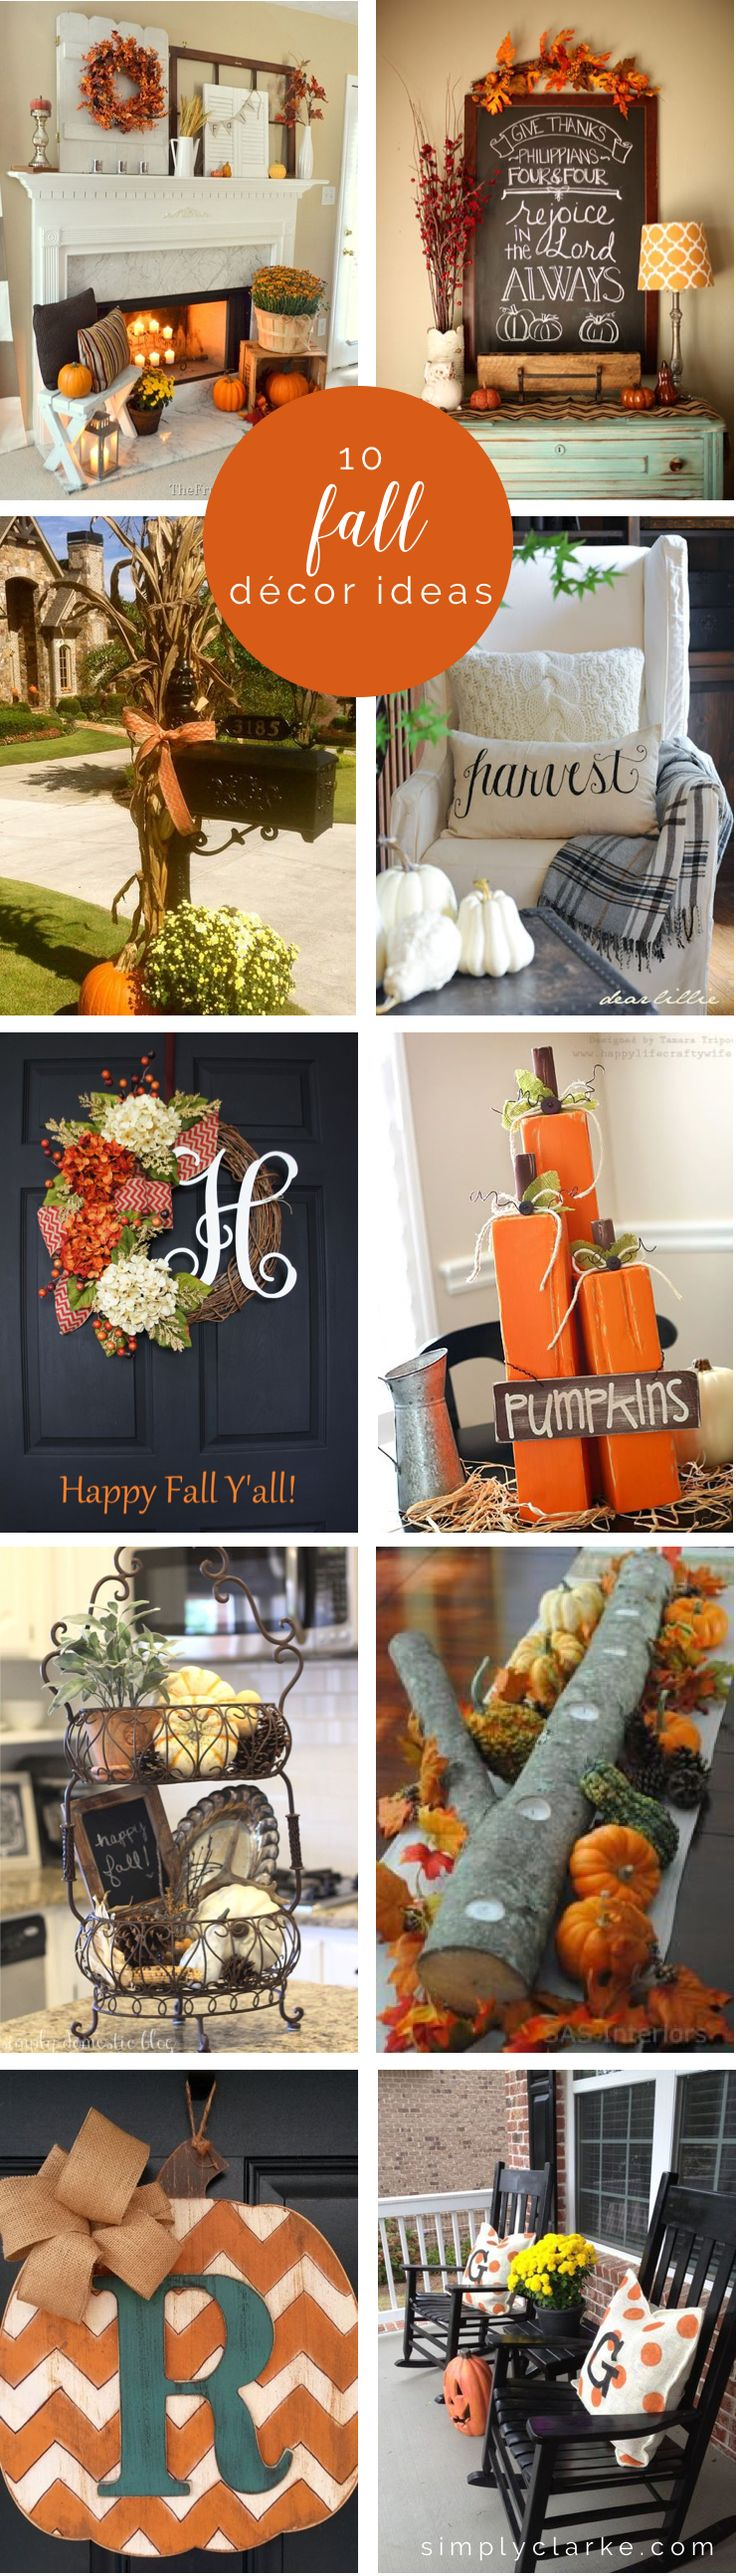 Mantel Decor | Chalkboard | Mailbox | Pillow Wreath | Pumpkins | Little Details | Centerpiece Wood Wreath | Outdoor Decor   I love having simple decor around my house for the Holidays. I normally start with a fun, decorative candy dish. I also love having decorative dish towels and a door wreath. Aside from the …